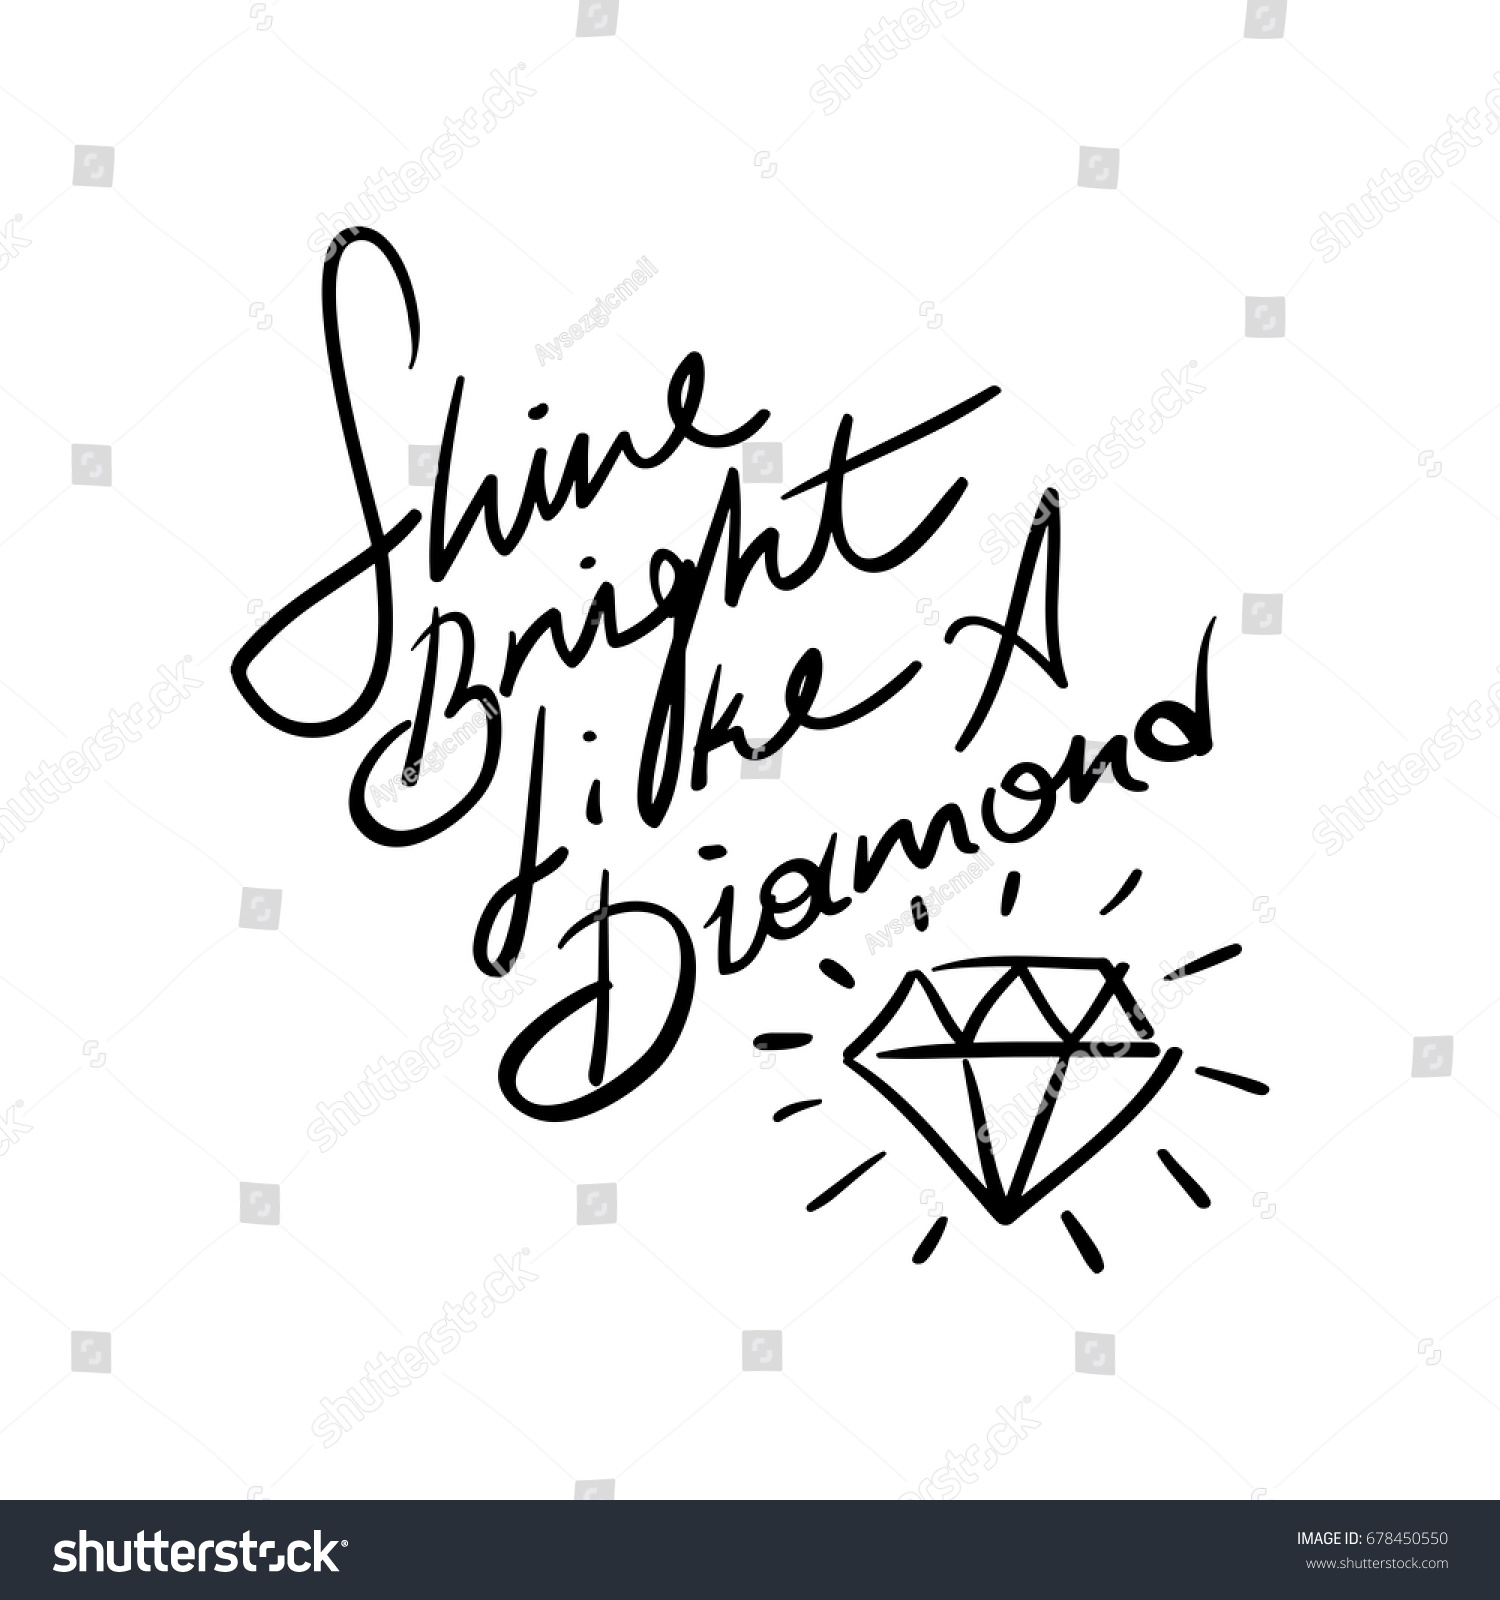 vector bright royalty inspiration free like shine image a diamond quote